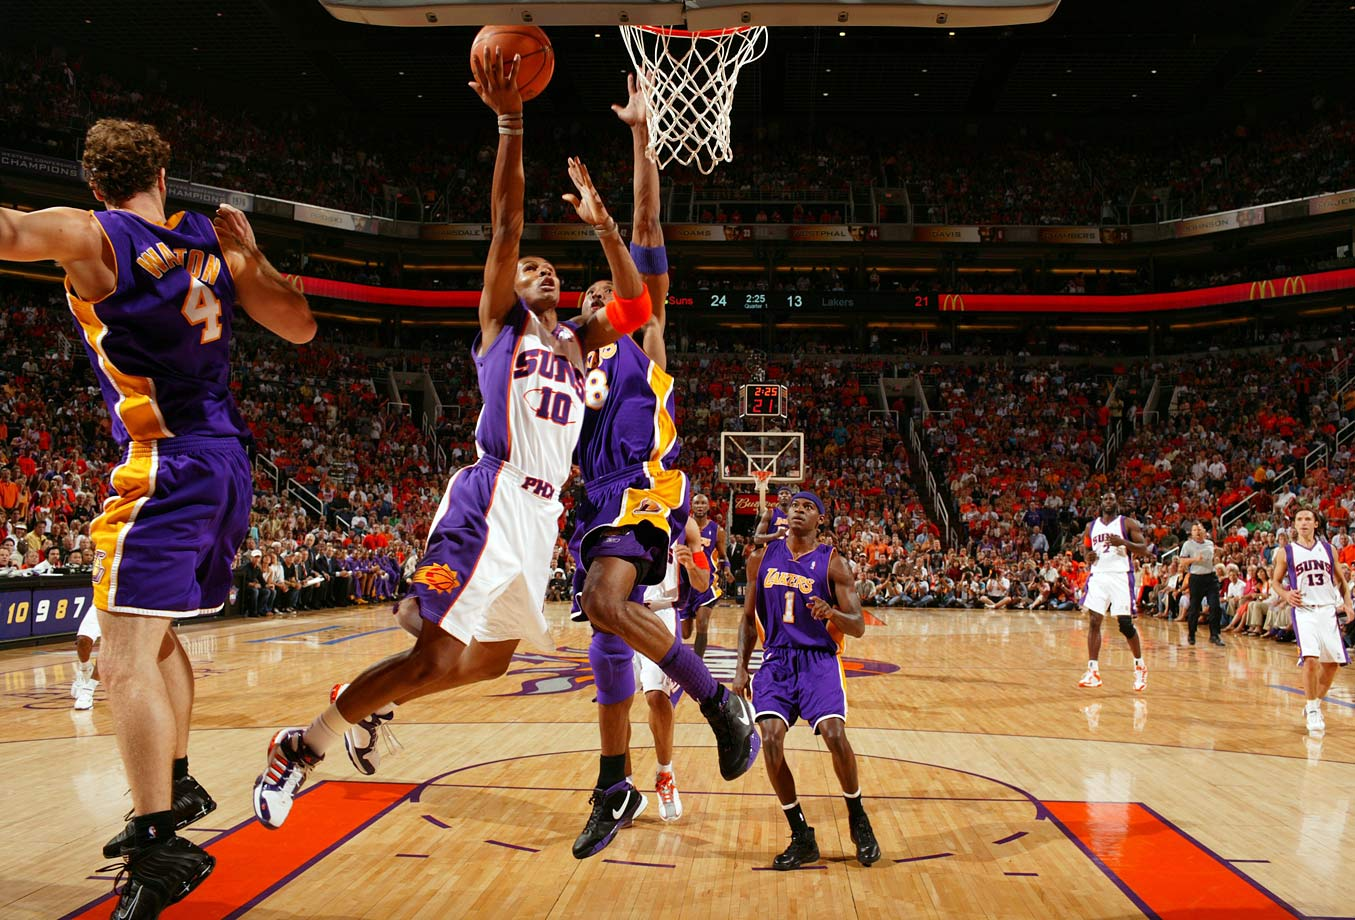 The Suns went from the brink to a blowout, from the edge of elimination to one of the most impressive turnarounds in NBA playoff history. Leandro Barbosa led the way in Game 7, scoring 26 points on 10-of-12 shooting in a 121-90 laugher.